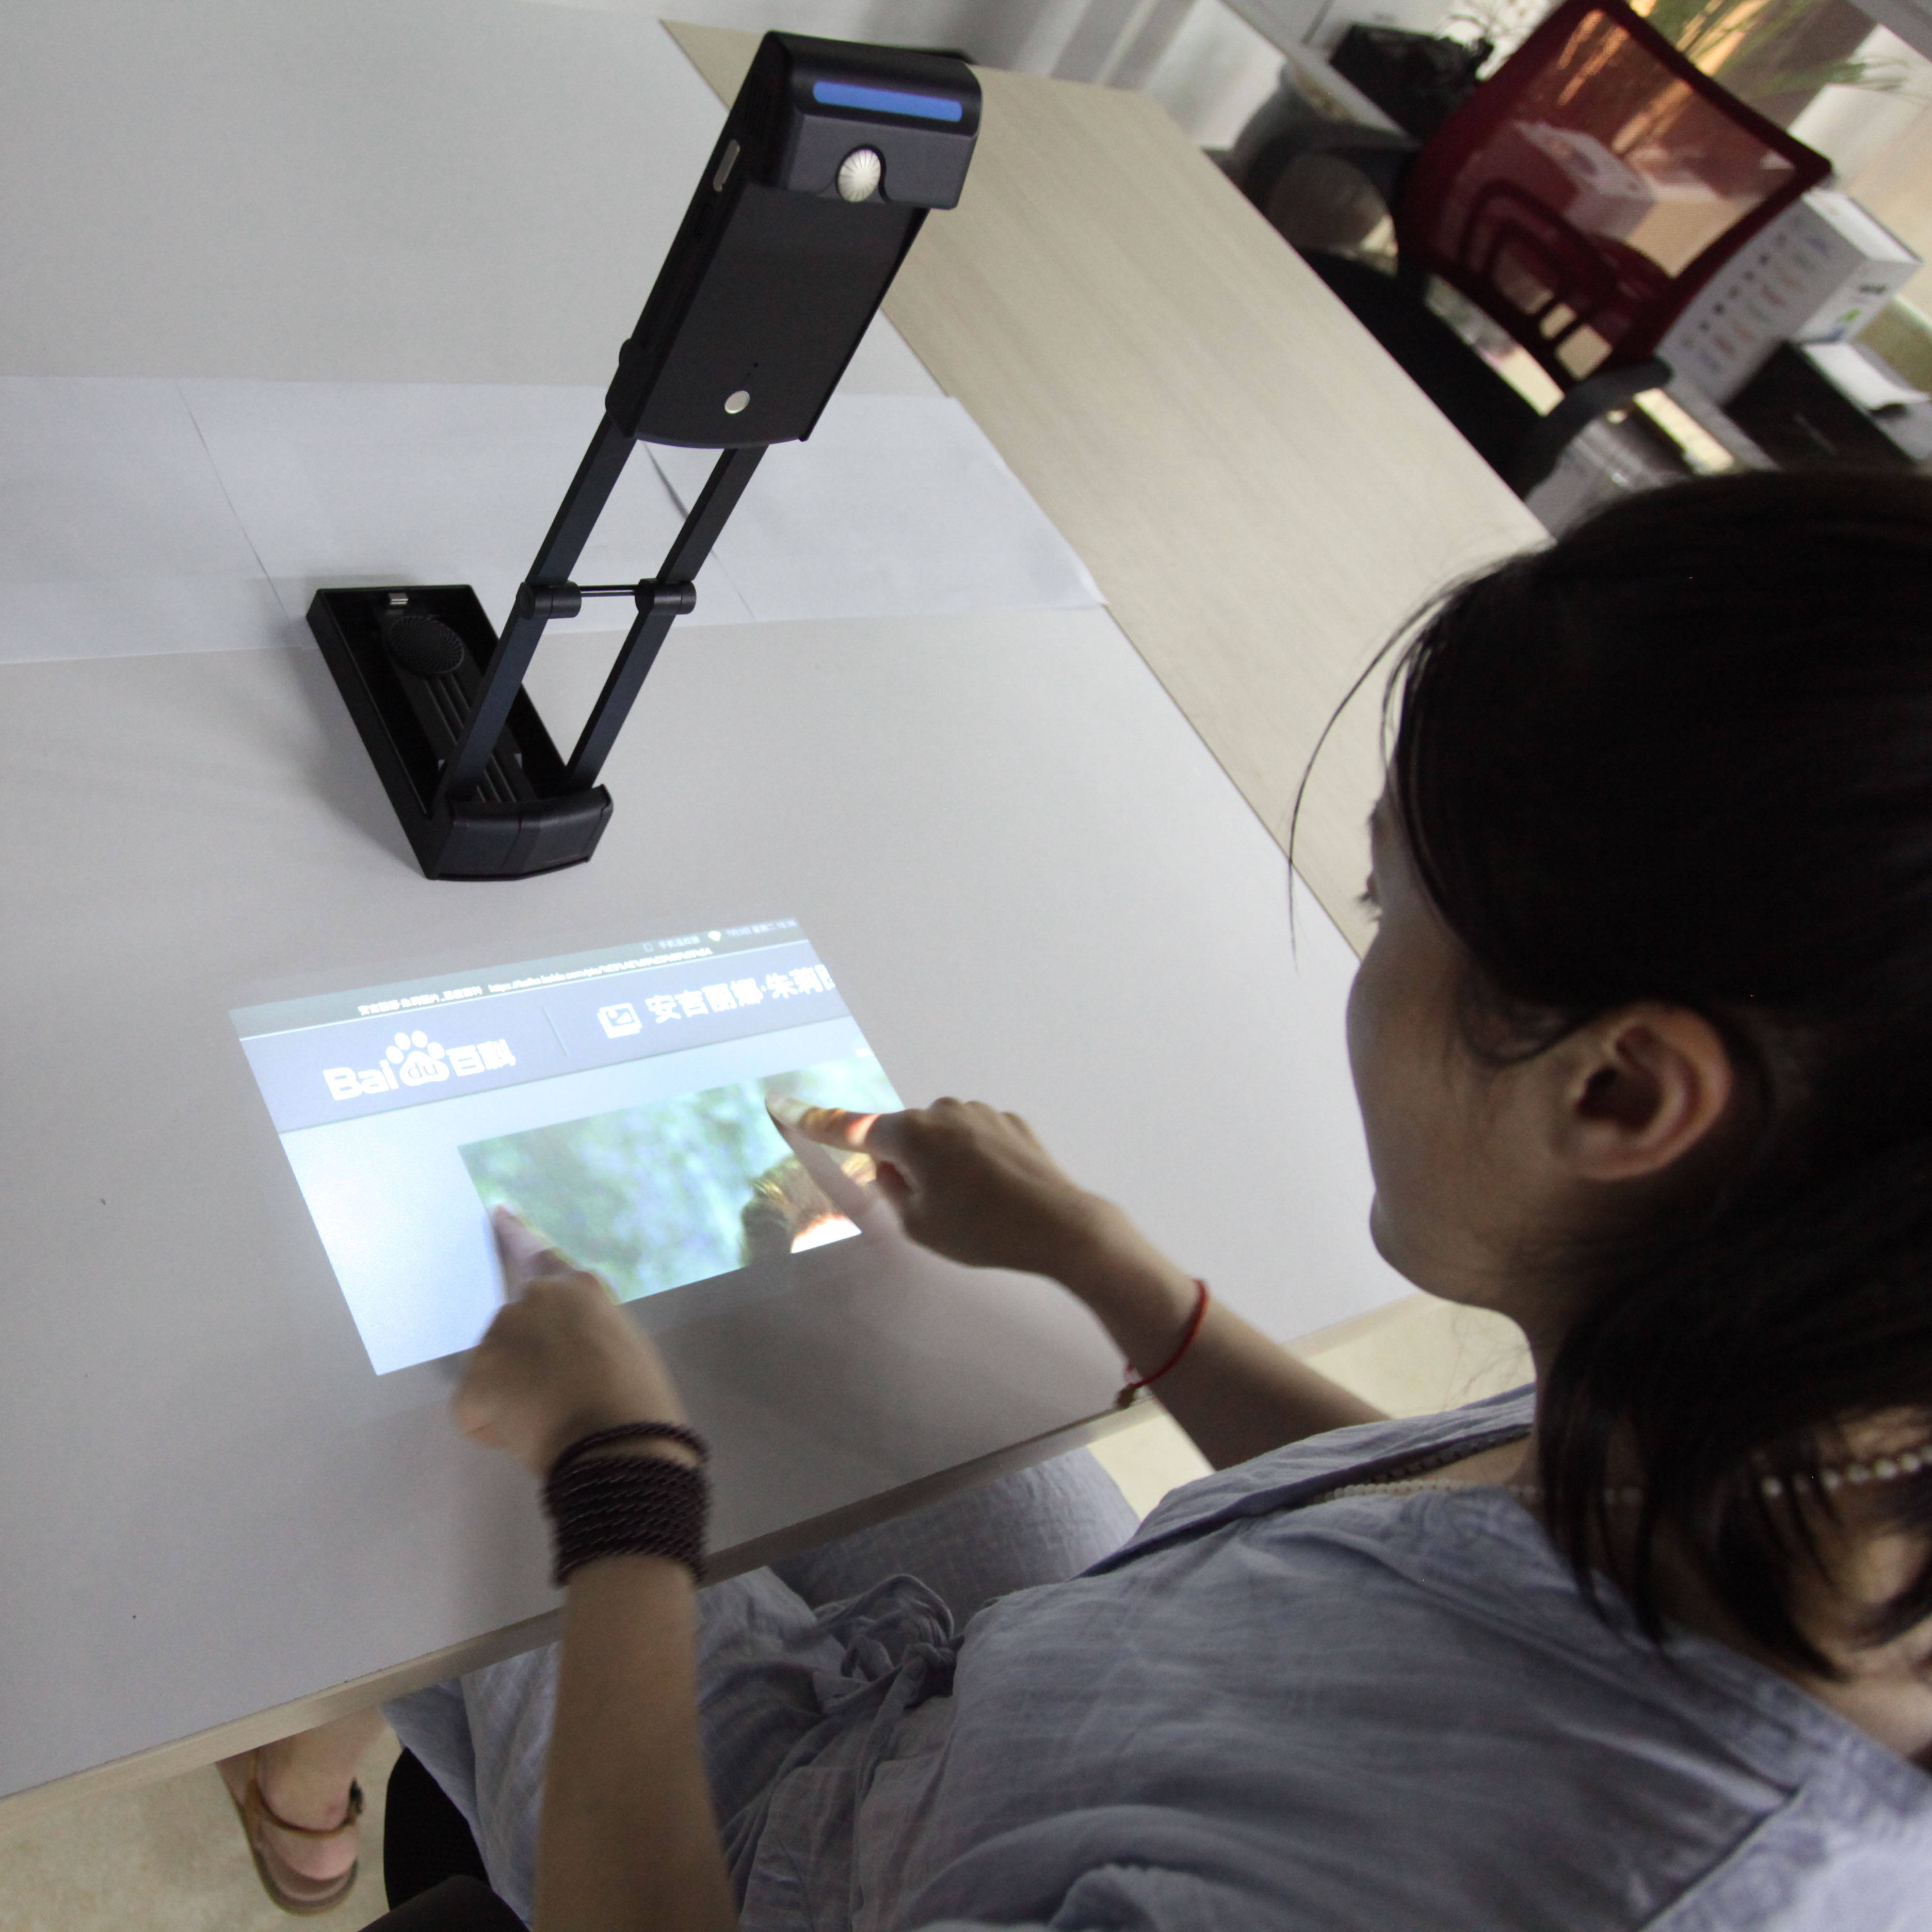 Portable interactive wifi multimedia projector, laser image calibration technology